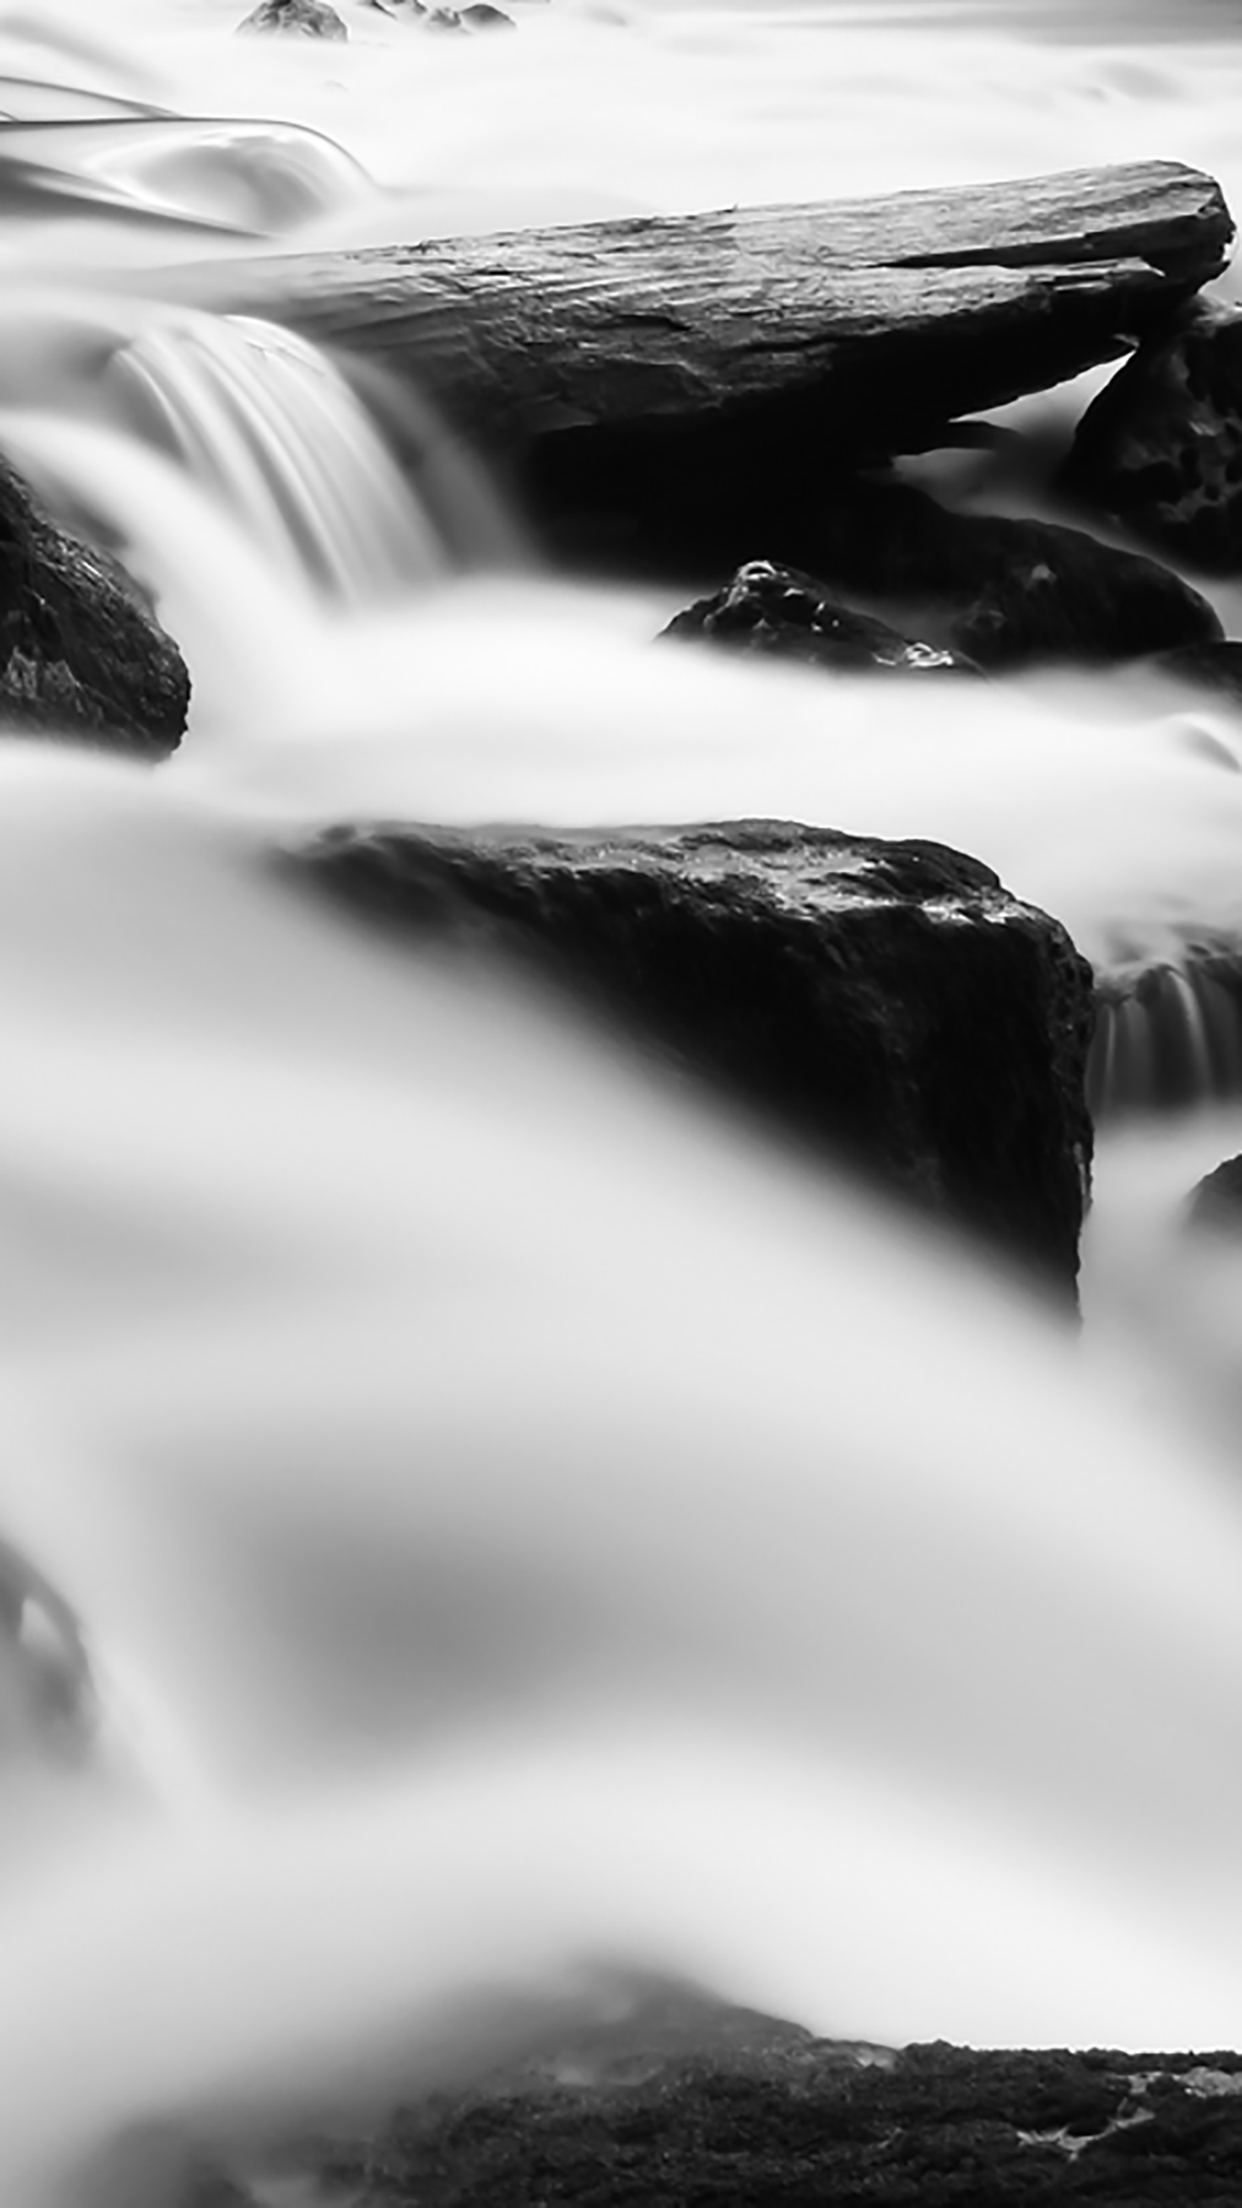 Nature Black And White River 3Wallpapers iPhone Parallax Nature Black And White : River